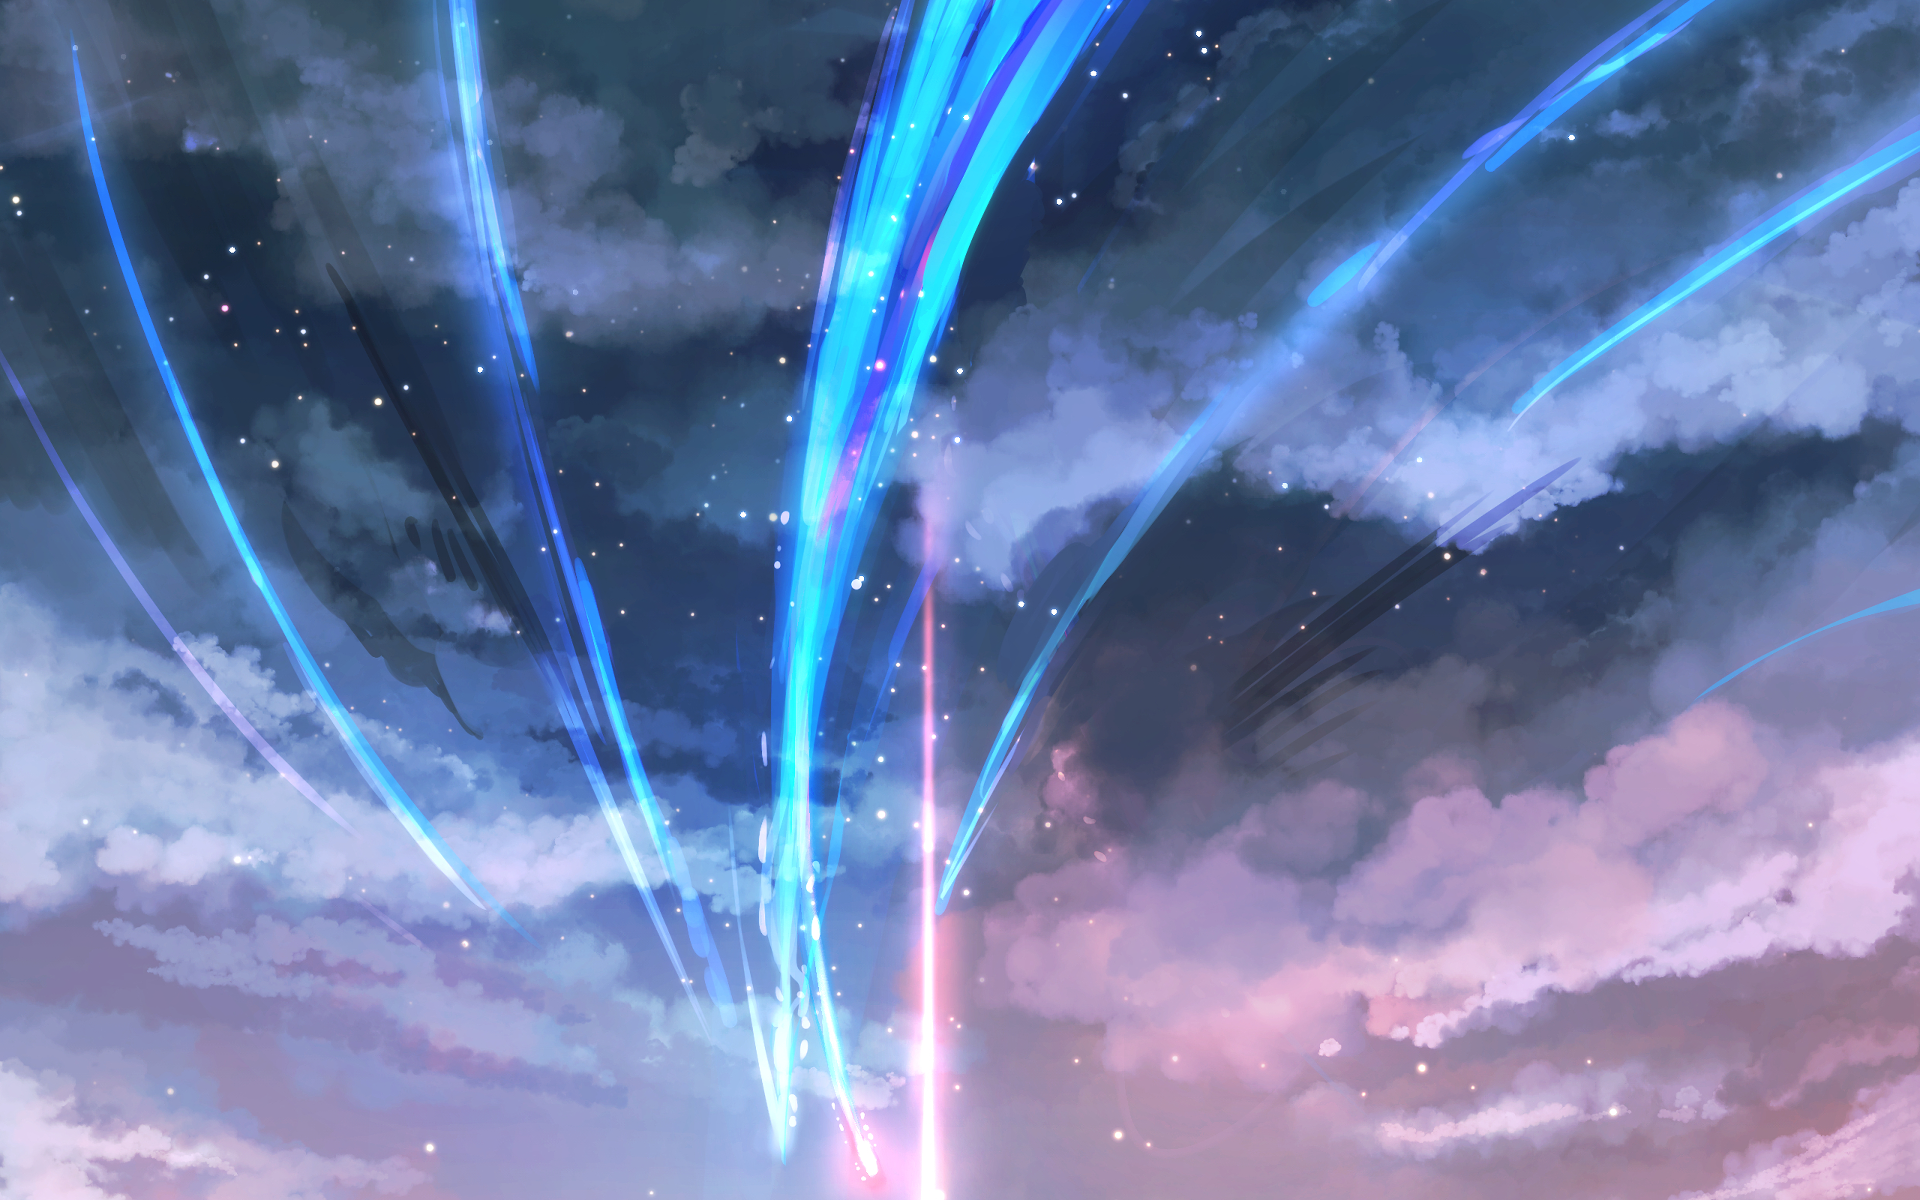 Hd wallpaper name - Anime Your Name Kimi No Na Wa Wallpaper